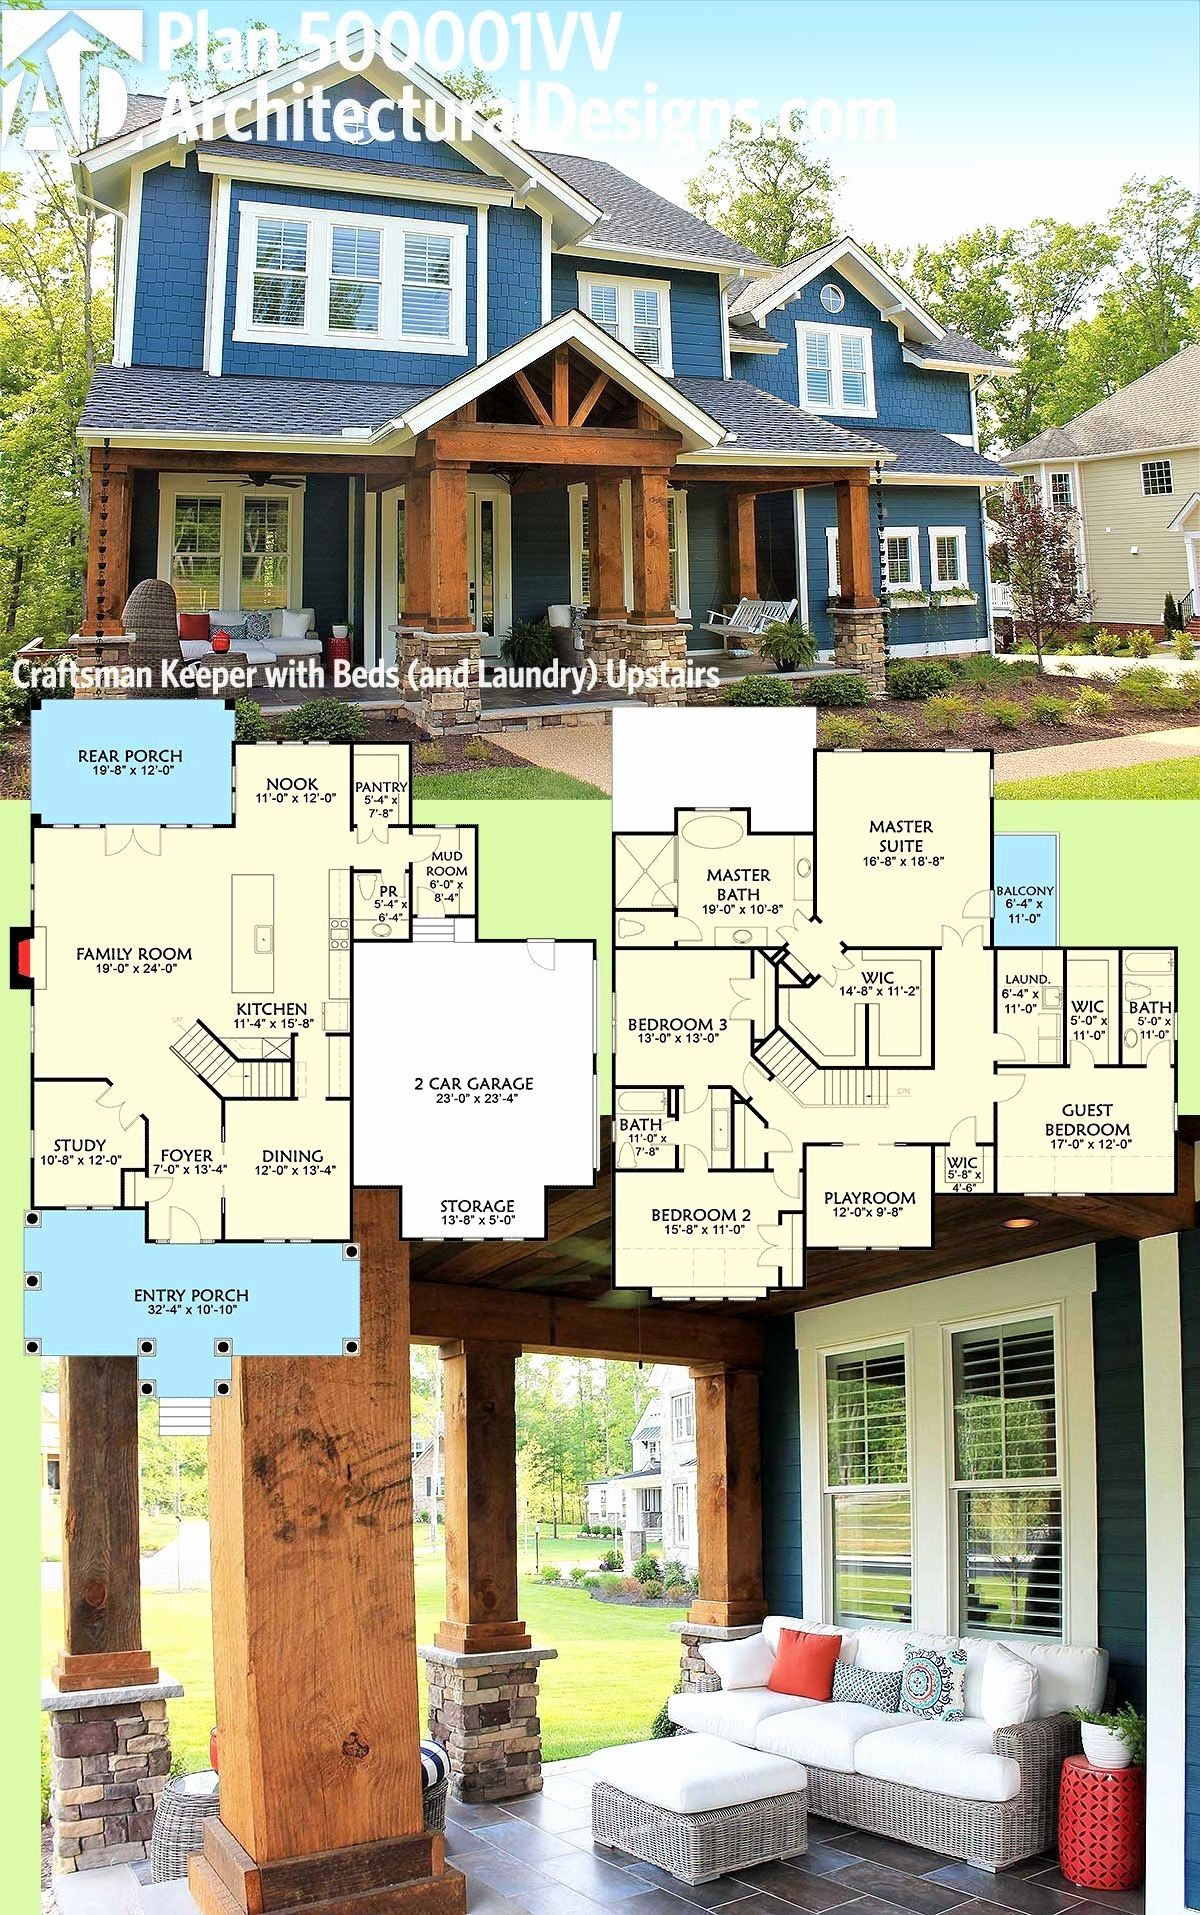 34 Totally Adorable Home Plans Craftsman One Story You Should Try Craftsman House Plans can also be affordable to build Shop or browse our broad One Story Farmhouse Plan...